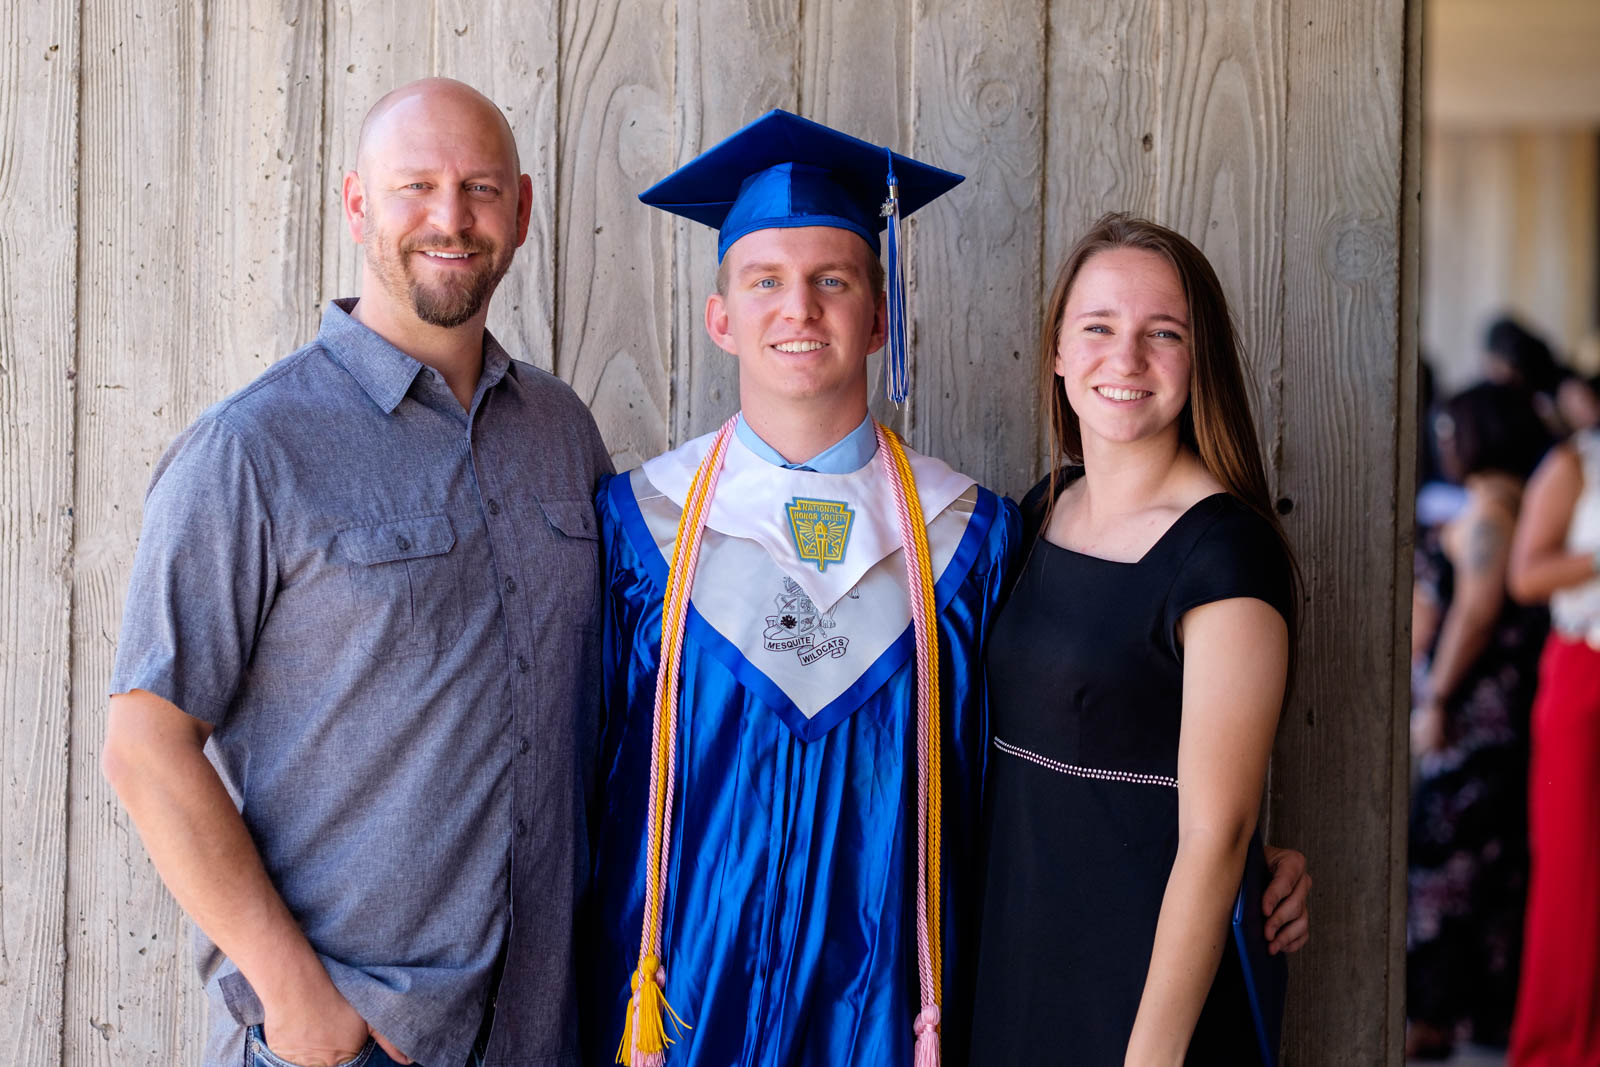 Matthew with his dad and sister